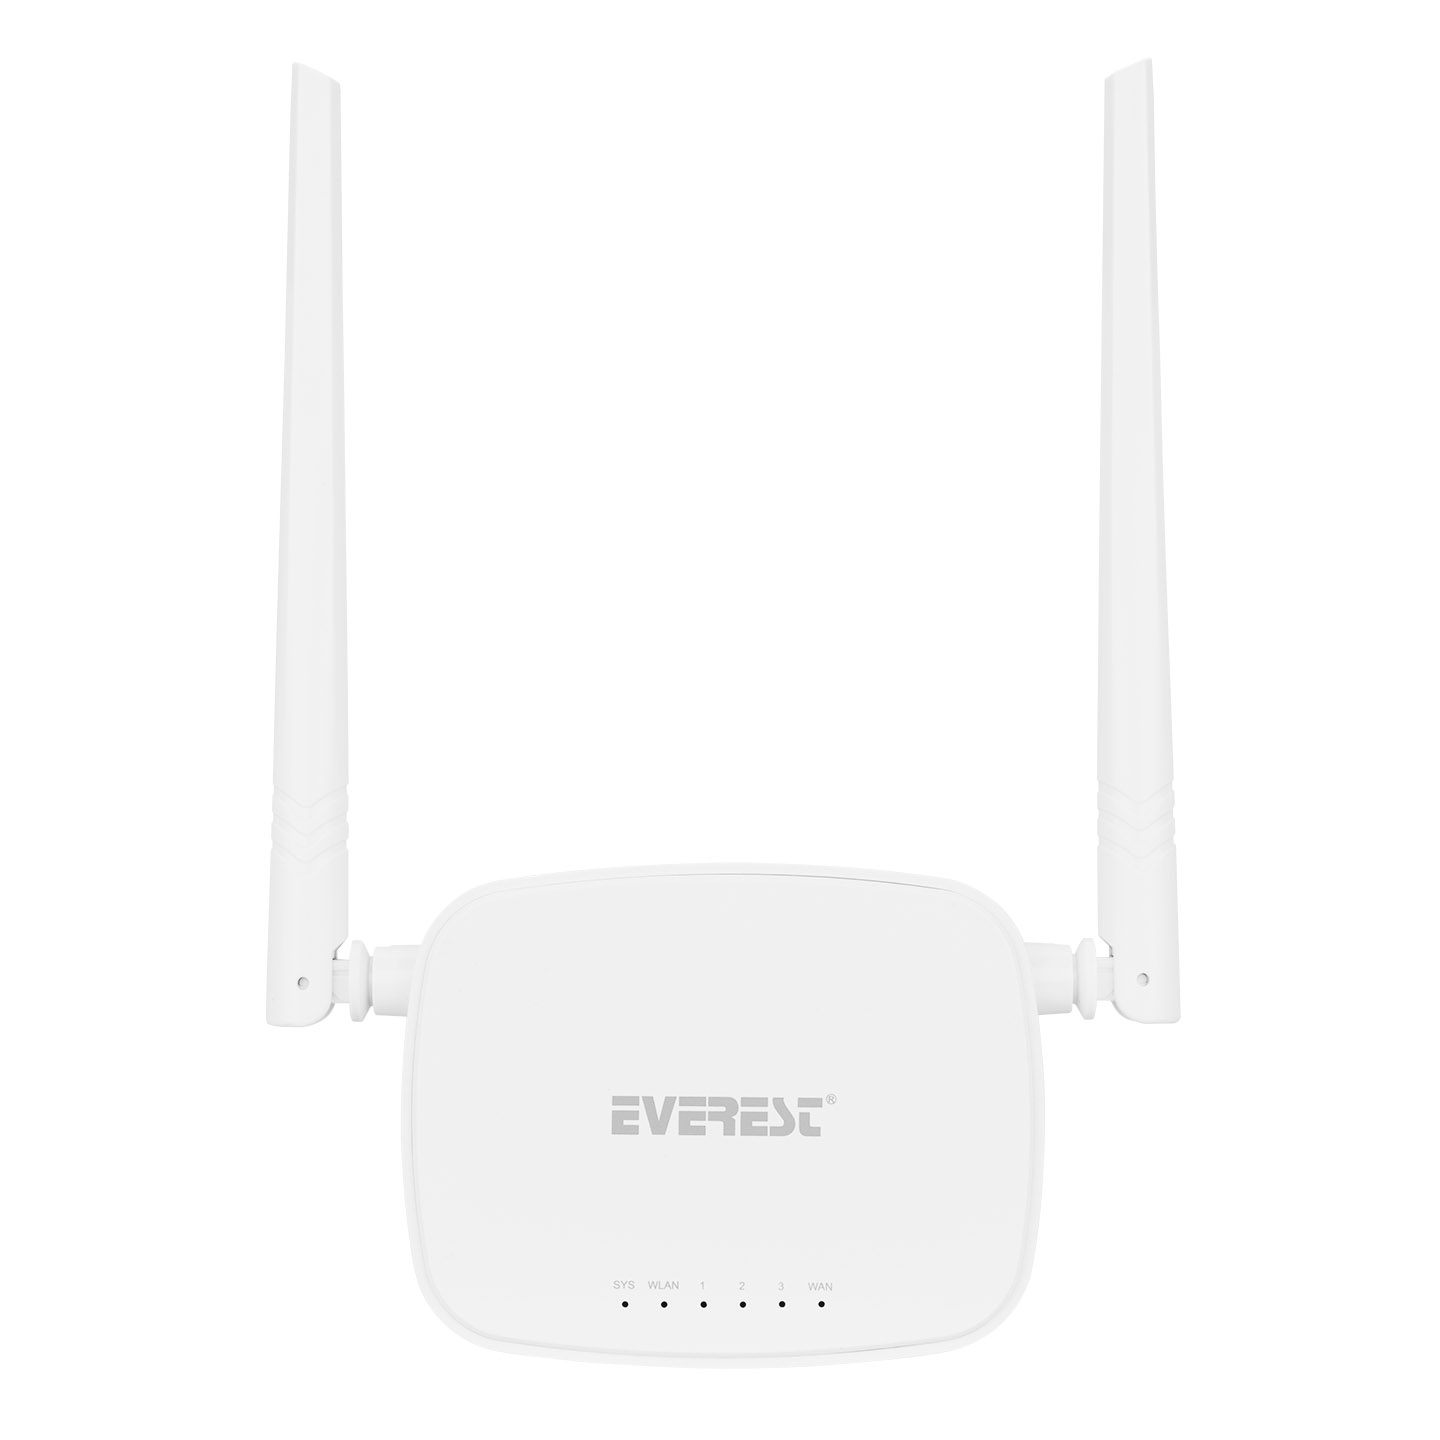 Everest EWR-301 Wireless-N WPS + WISP + WDS 300Mbps Repeater + Access Point + Bridge Wireless Router